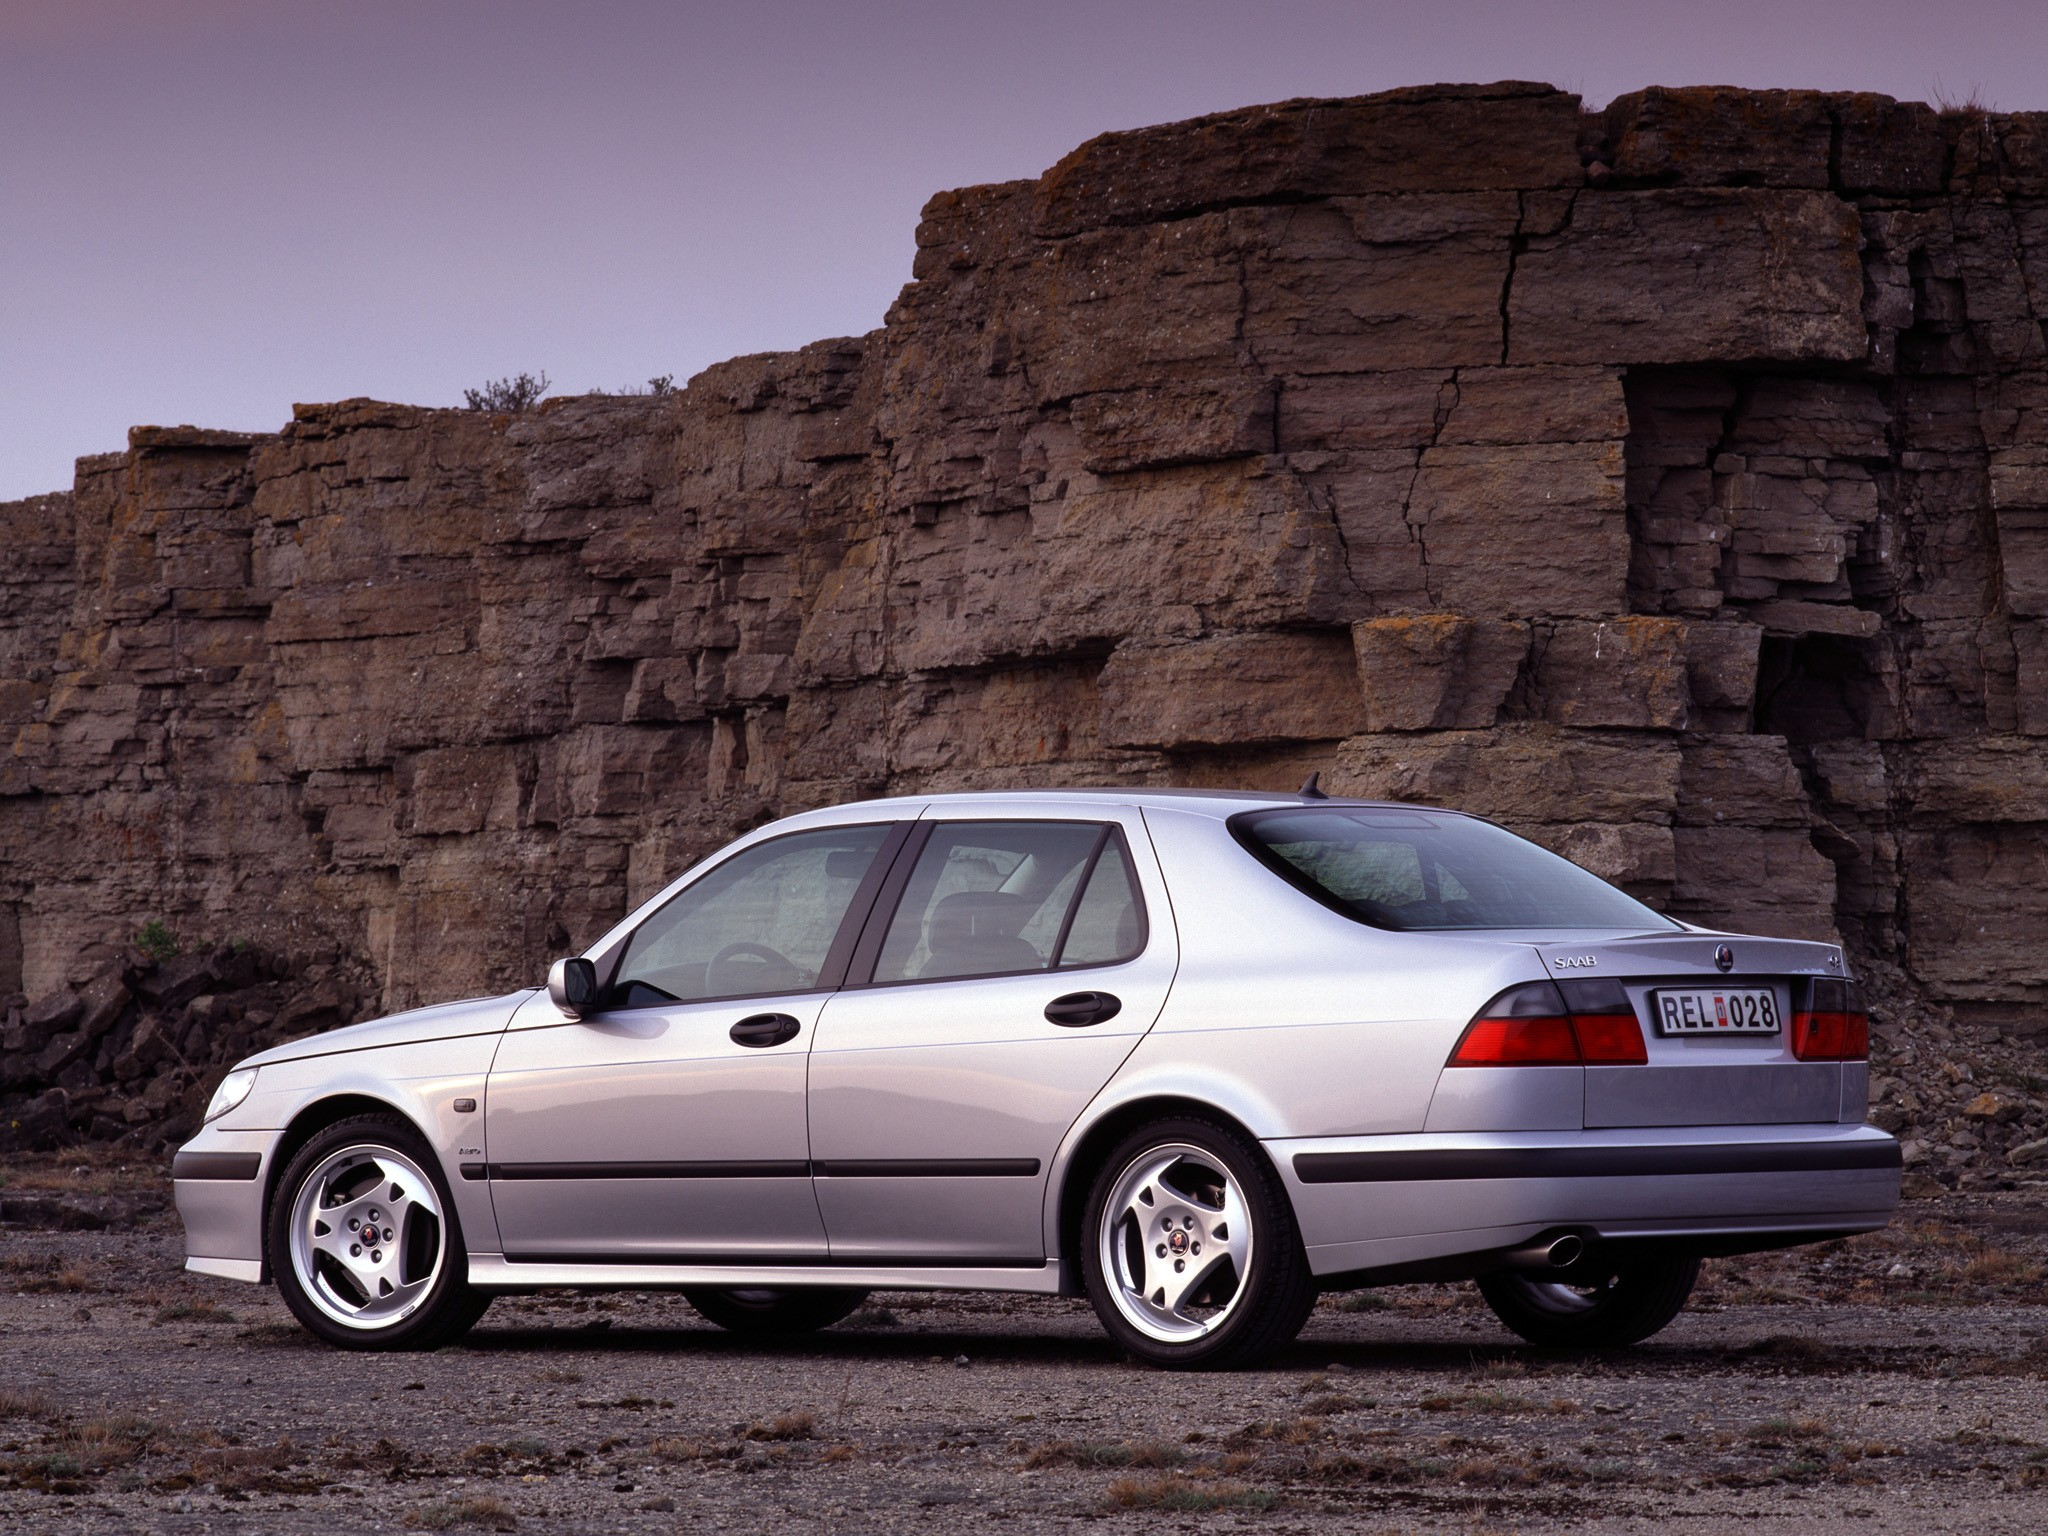 X M besides Saab Aero Convertible additionally Saab Sport Sedan Aero besides Saab Coupe Wallpaper also . on saab 9 3 aero engine